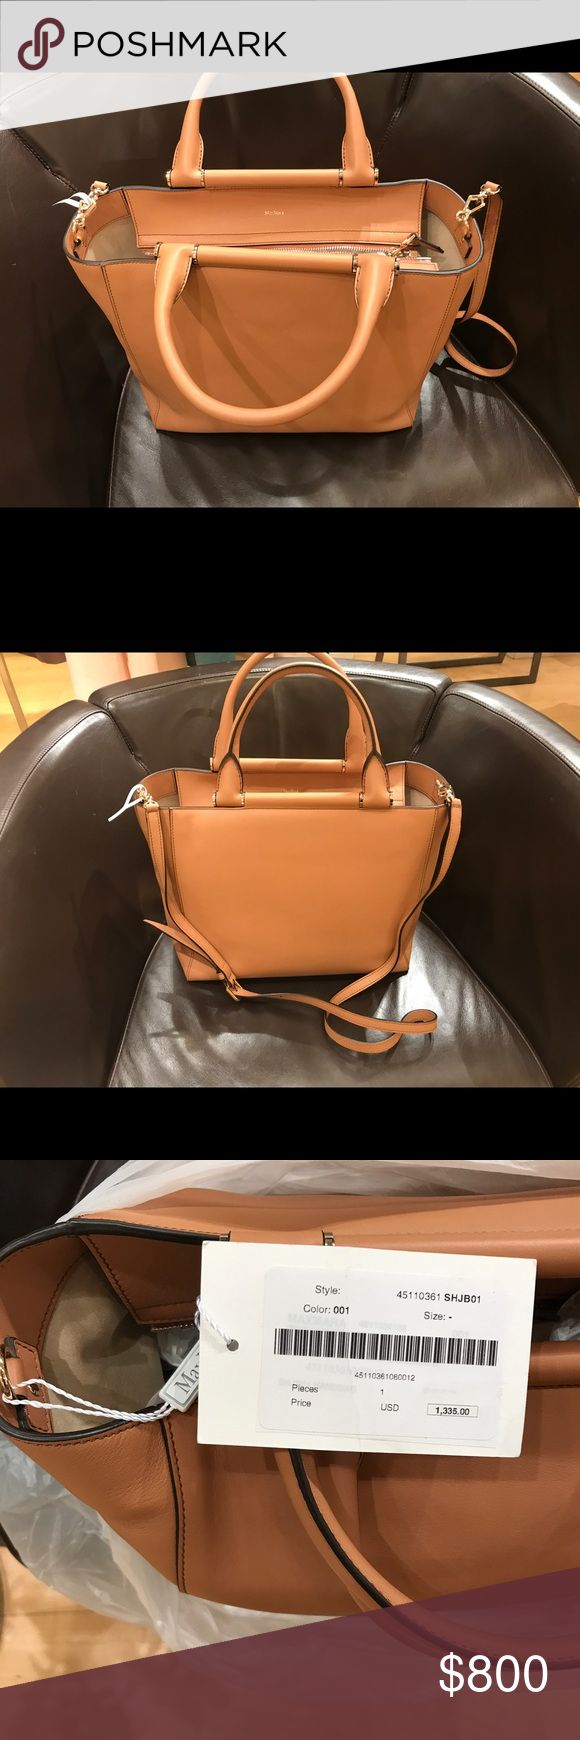 Max Mara Large Size Leather Bag Gorgeous, tan leather, large size bag. Includes strap and dust bag. Brand new with tags. MaxMara Bags Satchels